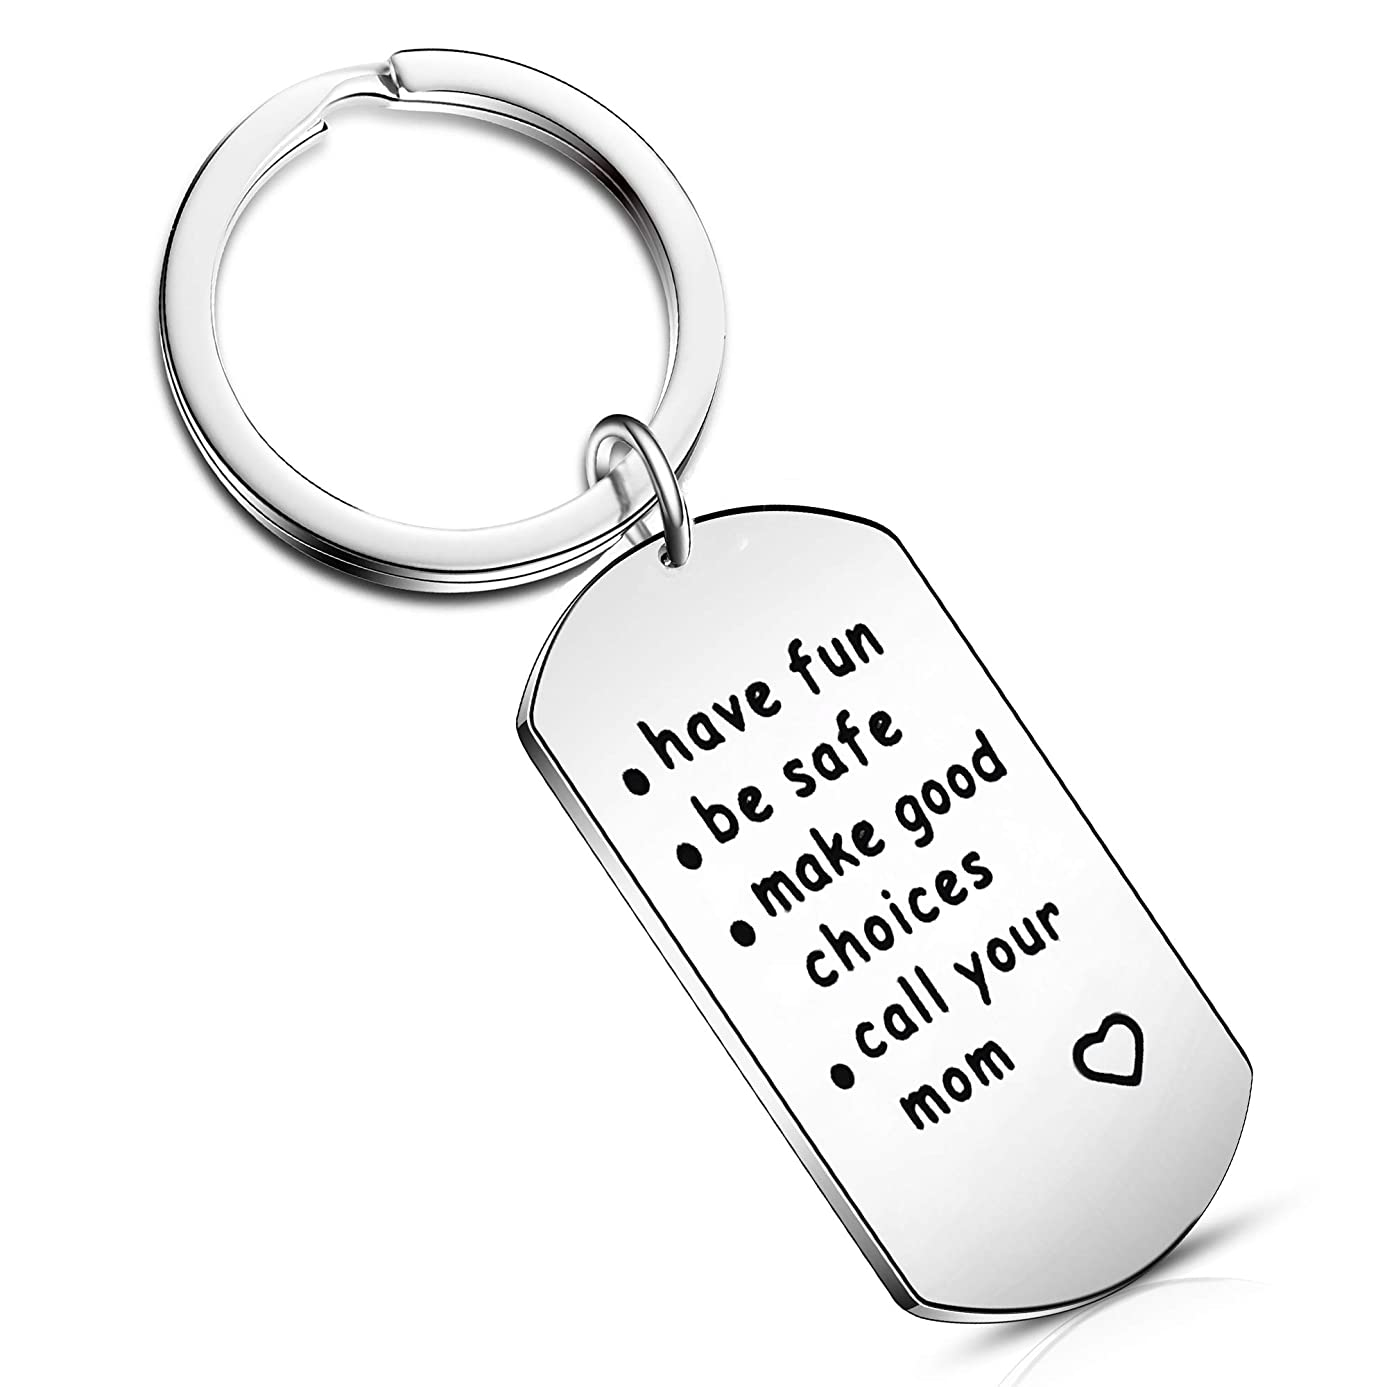 Have Fun, Be Safe, Make Good Choices and Call Your Mom New Driver Graduation Keychain Daughter Son Family Jewelry (Style-1)